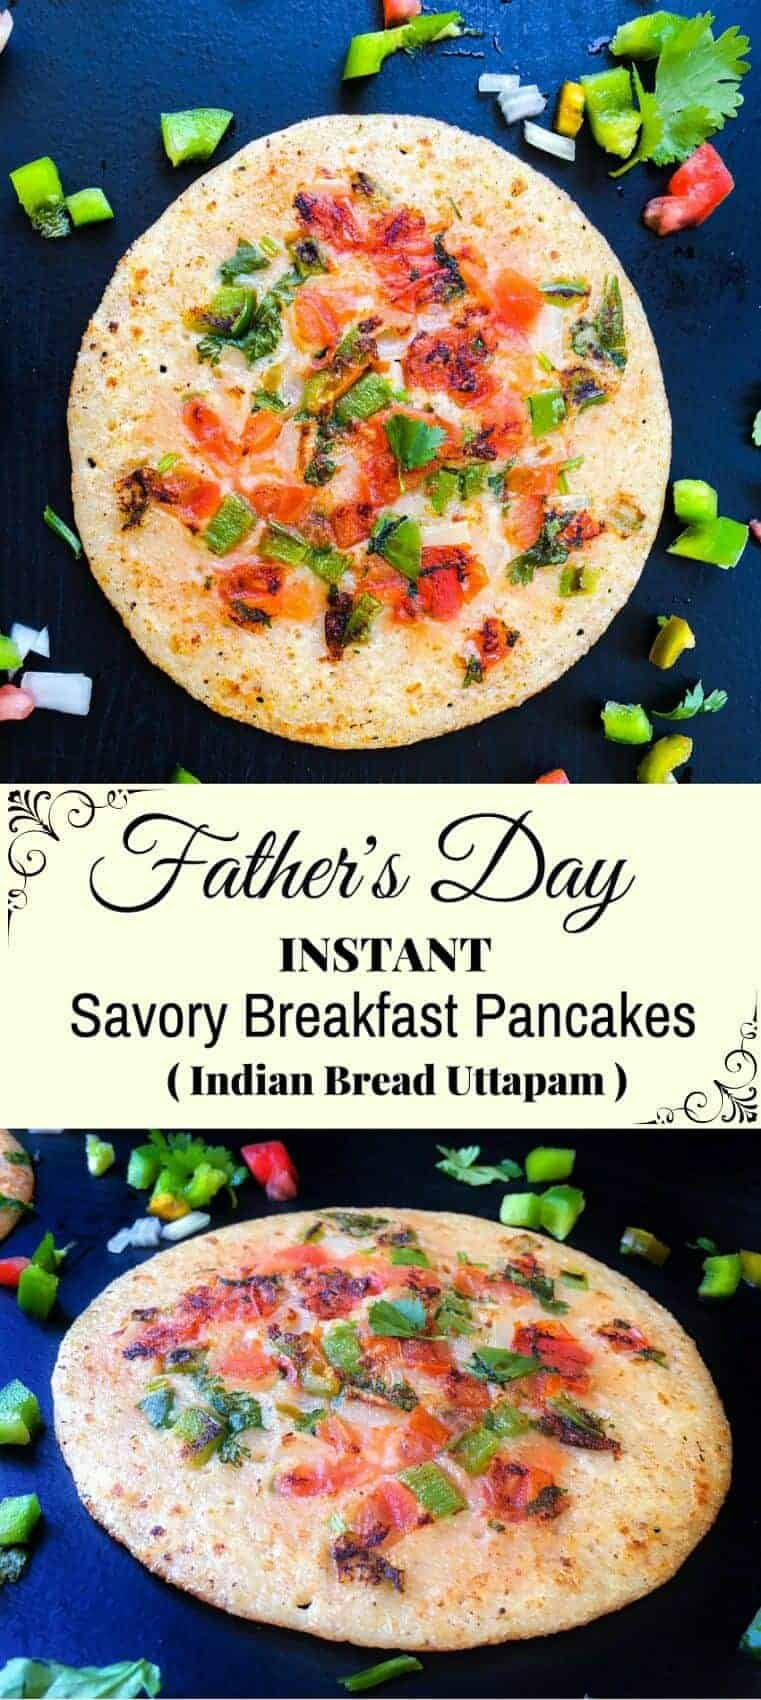 Instant Uttapam Recipe using Sooji - Bread: #uttapam #instantuttapam #sooji #breaduttapam #indianfood #fathersday